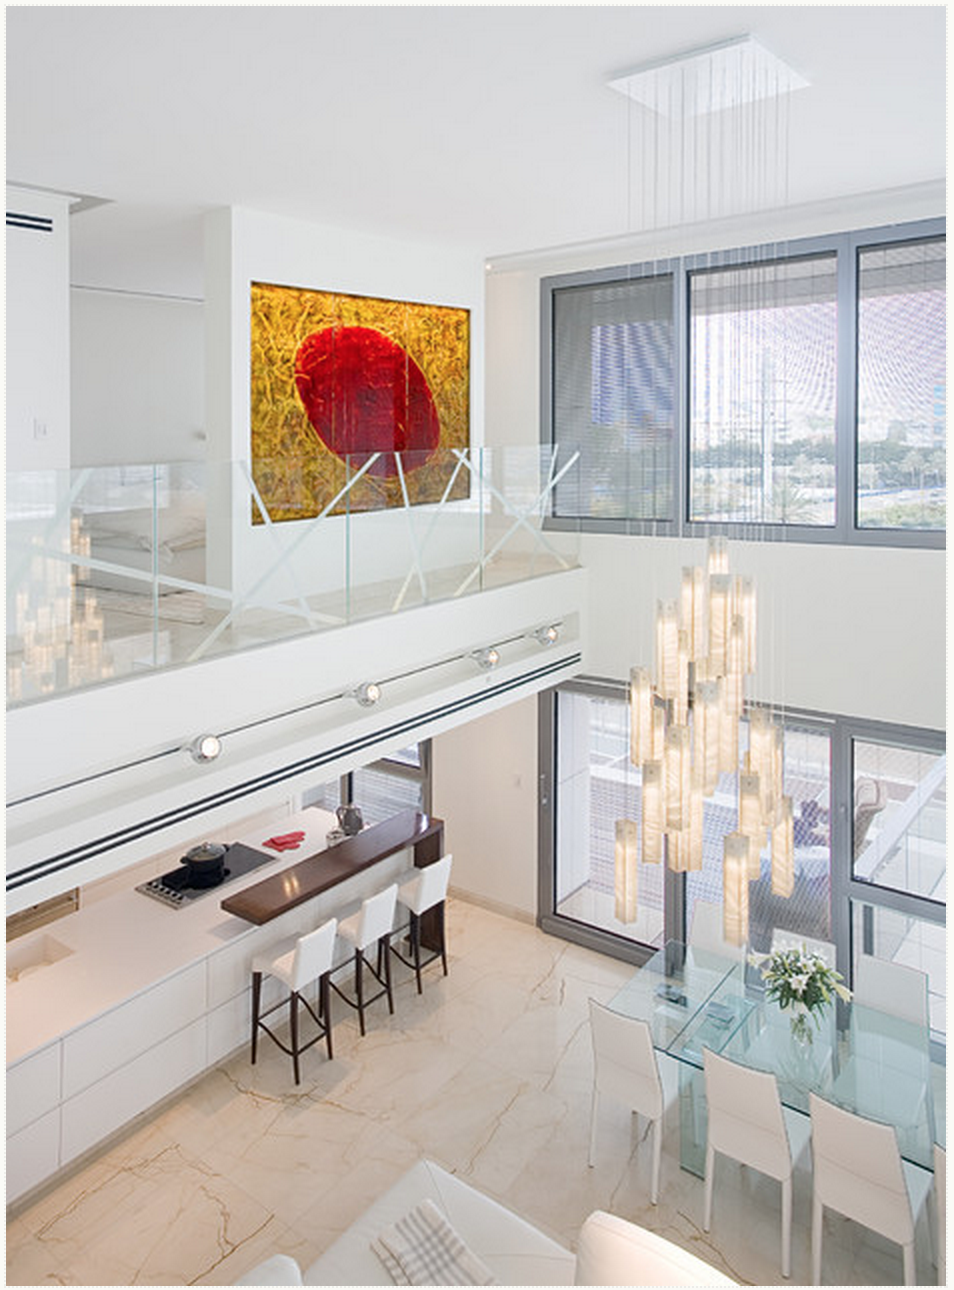 Even etched glass looks fantastic bringing a more contemporary flair to a usually minimalist and modern design choice